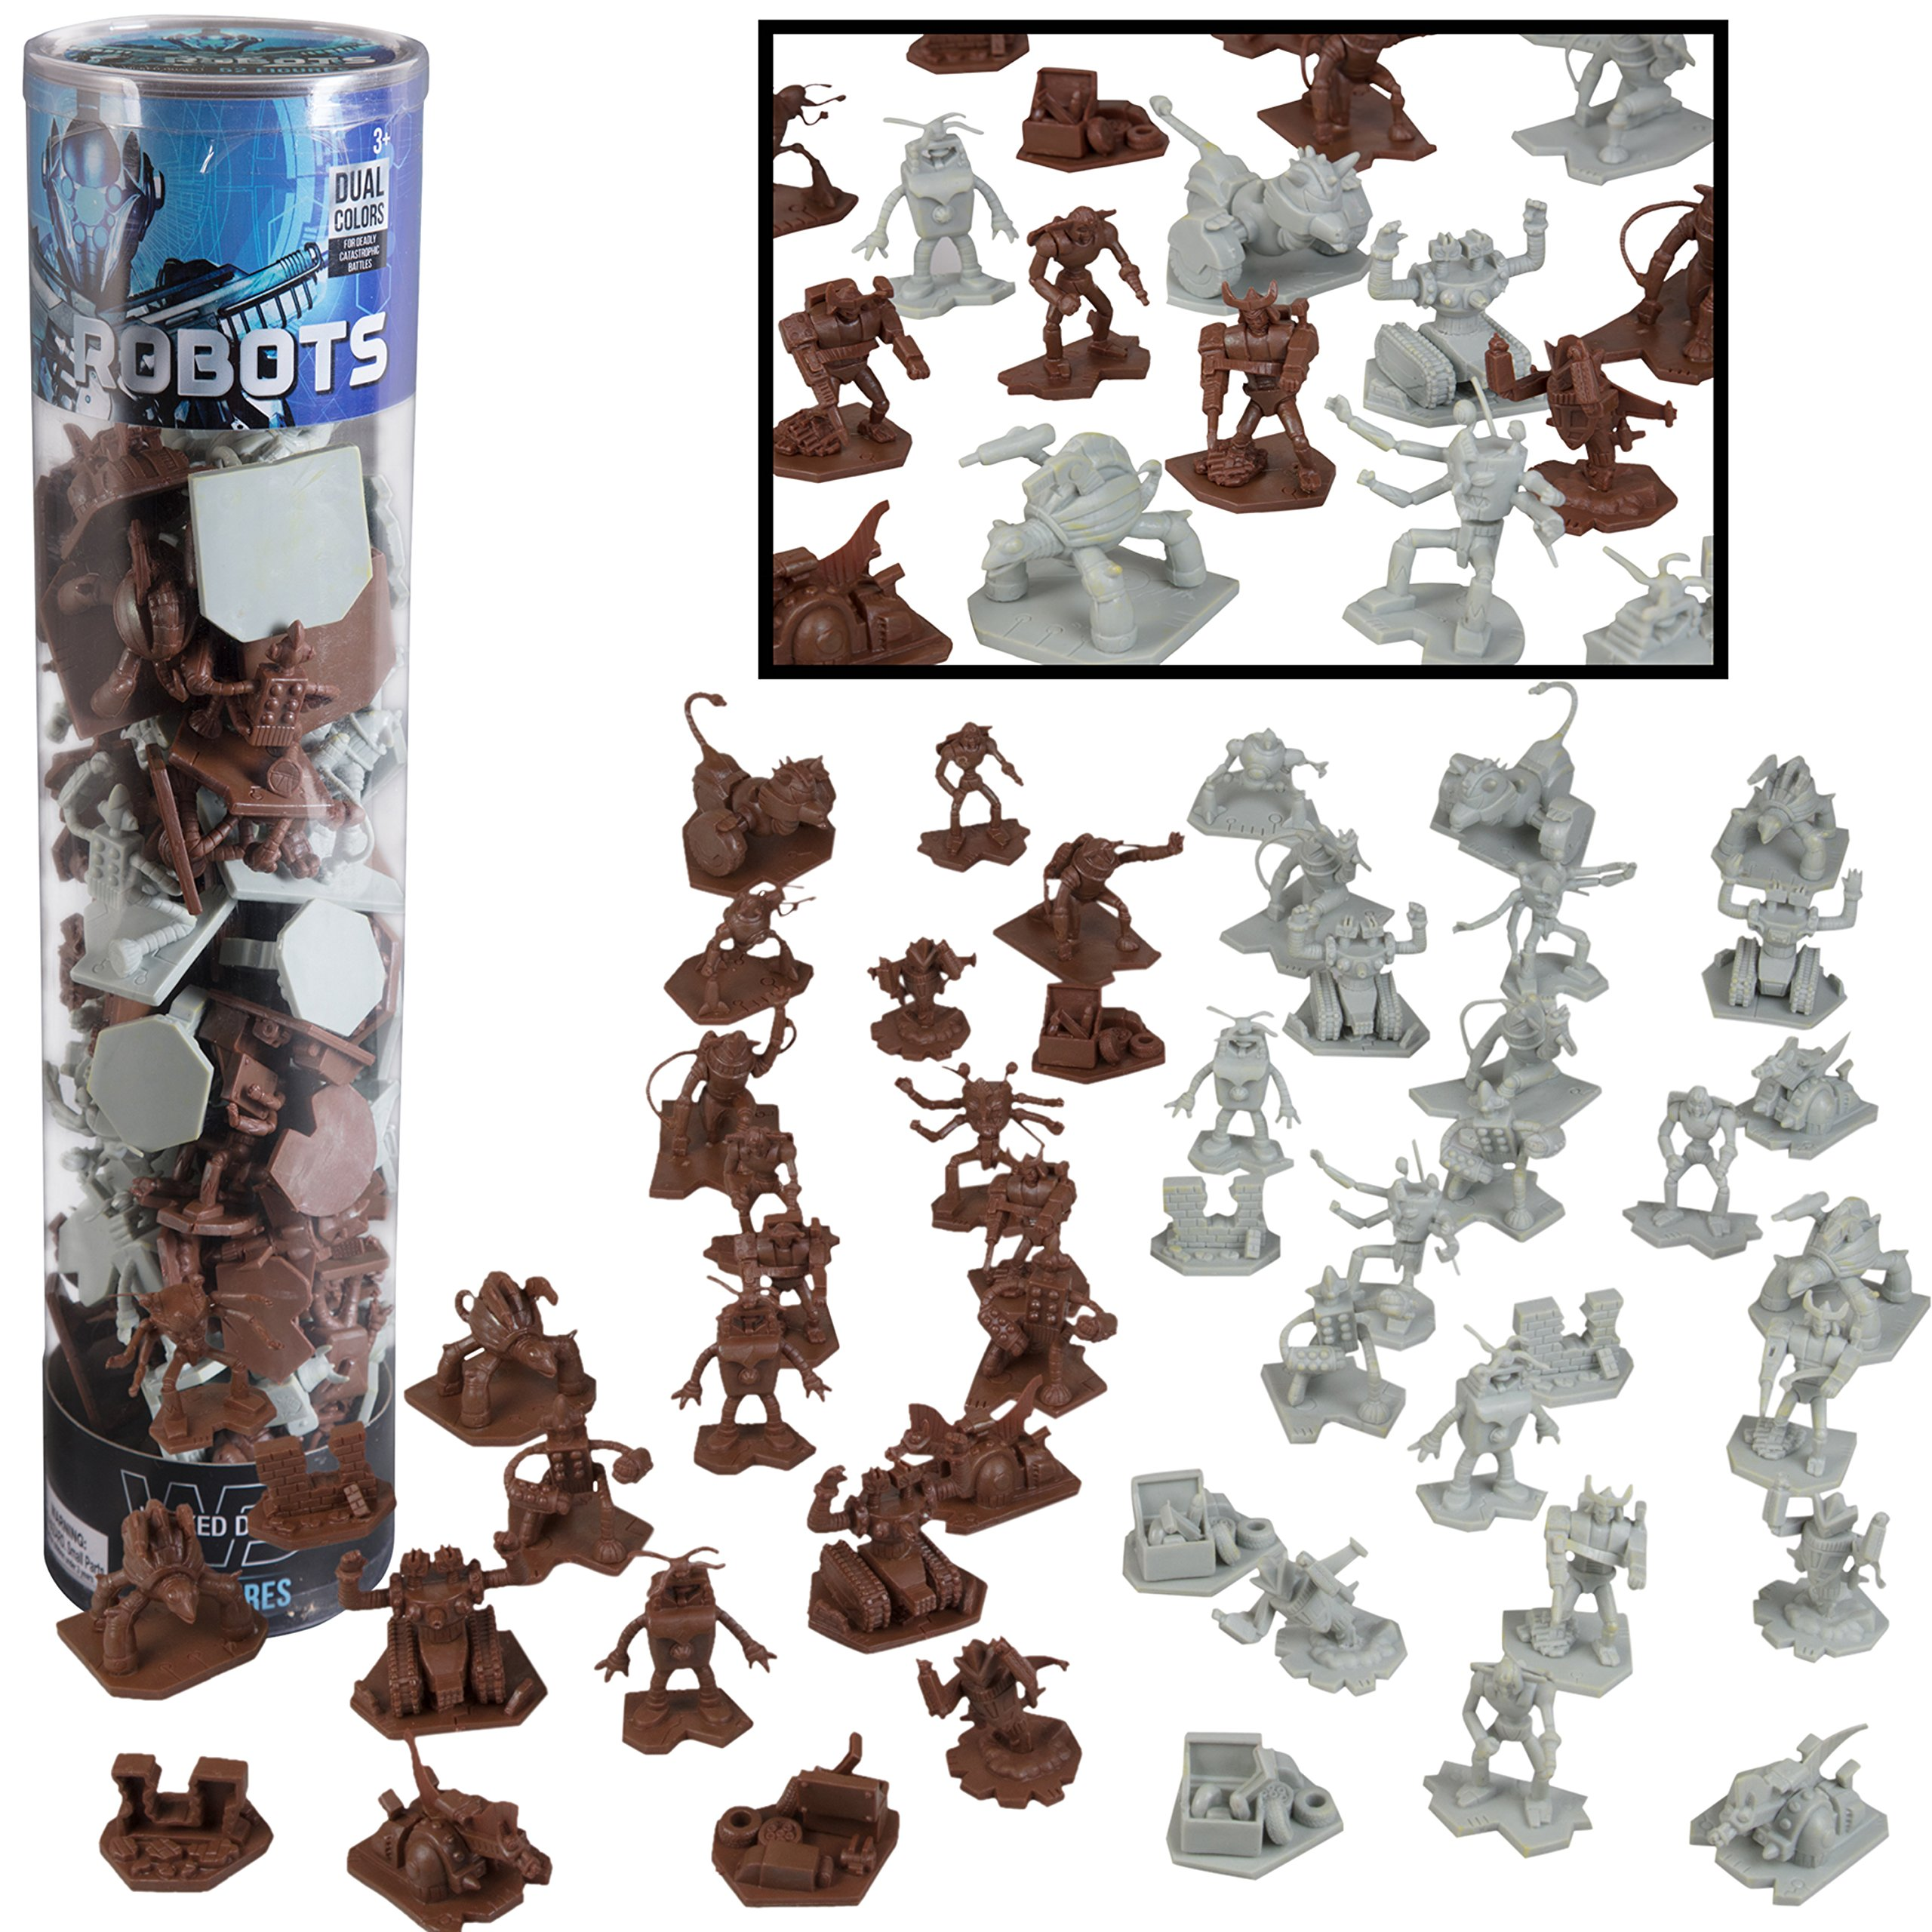 SCS Direct Robot Fantasy Sci-fi Action Figures - 52 Futuristic Space Battle Toys - with 14 Unique Characters - Great for Party Favors, Role Playing Games, Shadowrun, etc